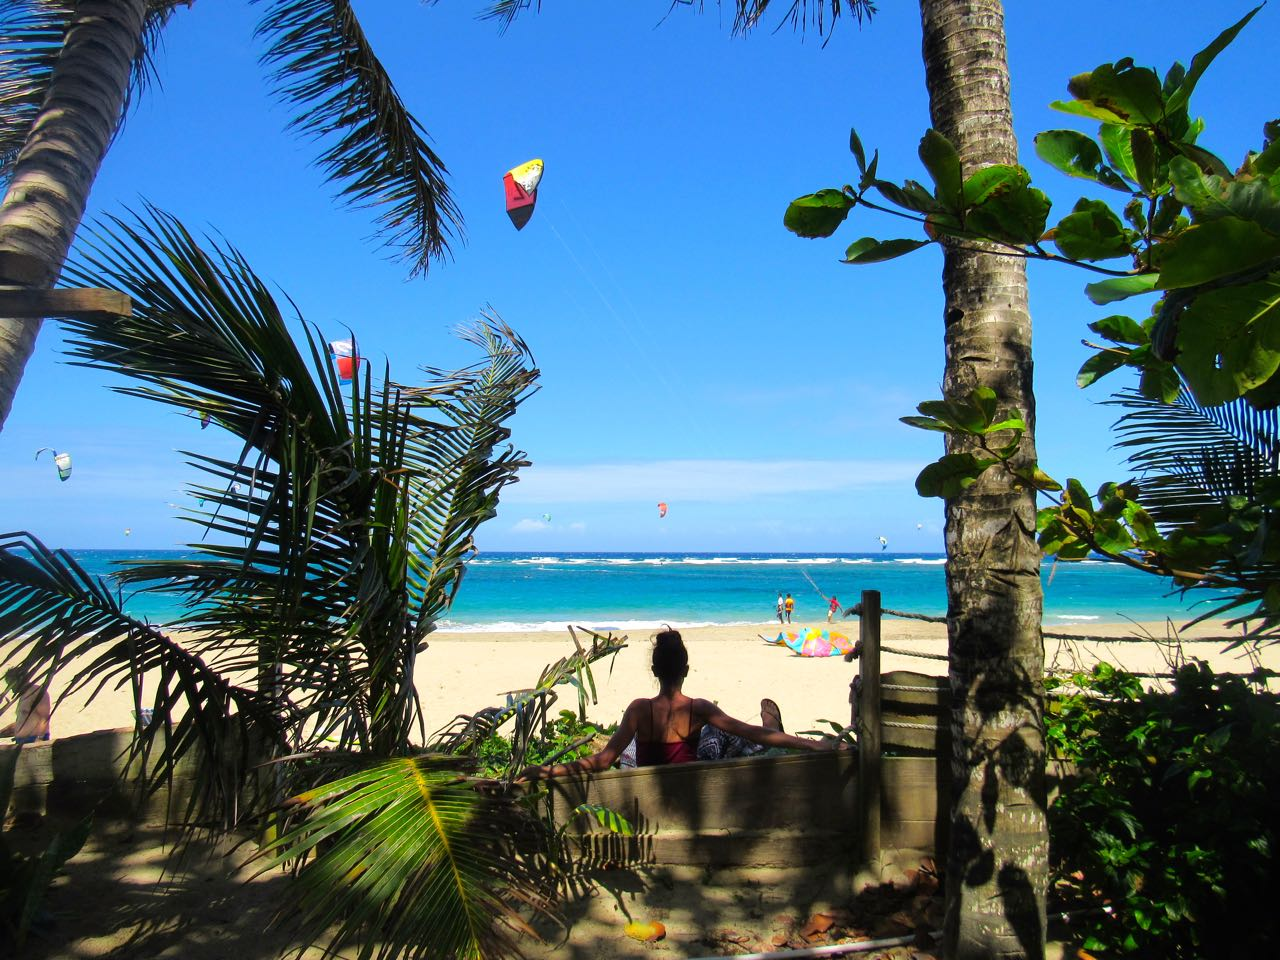 Kite surfing out the front of The eXtreme Hotel, Cabarete, Dominican Republic